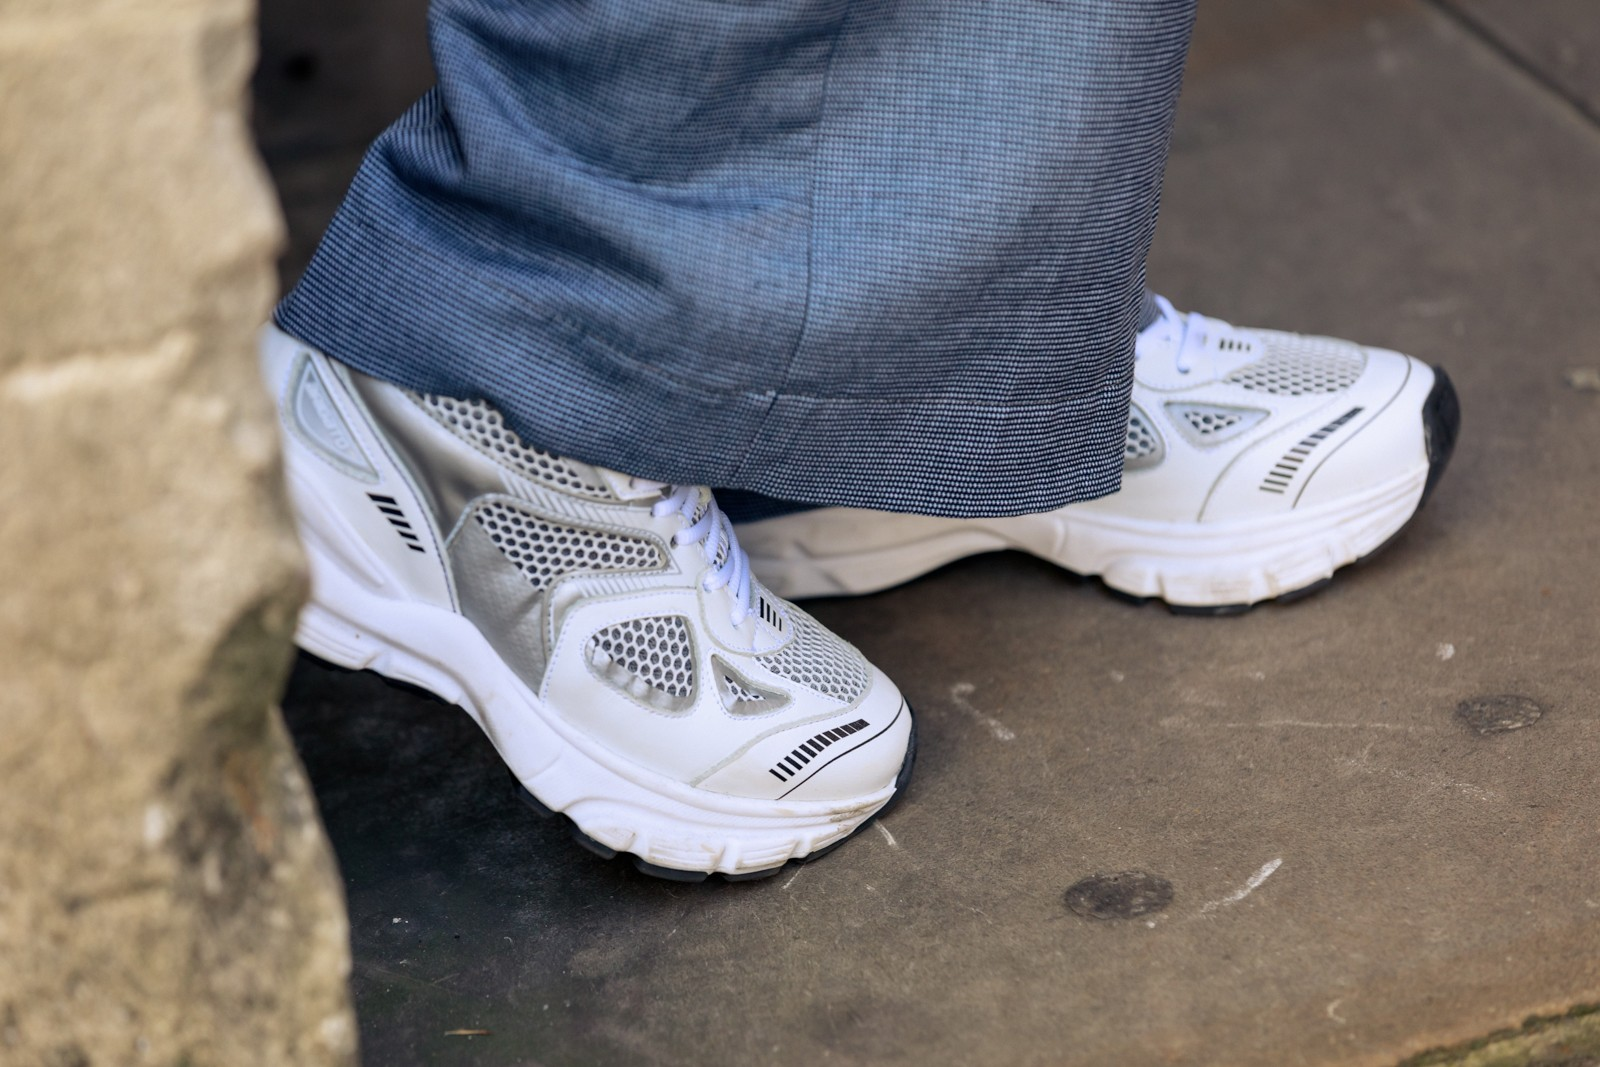 Best Street Style Sneakers London Fashion Week LFW SS20 Nike Shox TL Kendrick Lamar Cortez Prada Cloudbust Thunder Axel Arigato